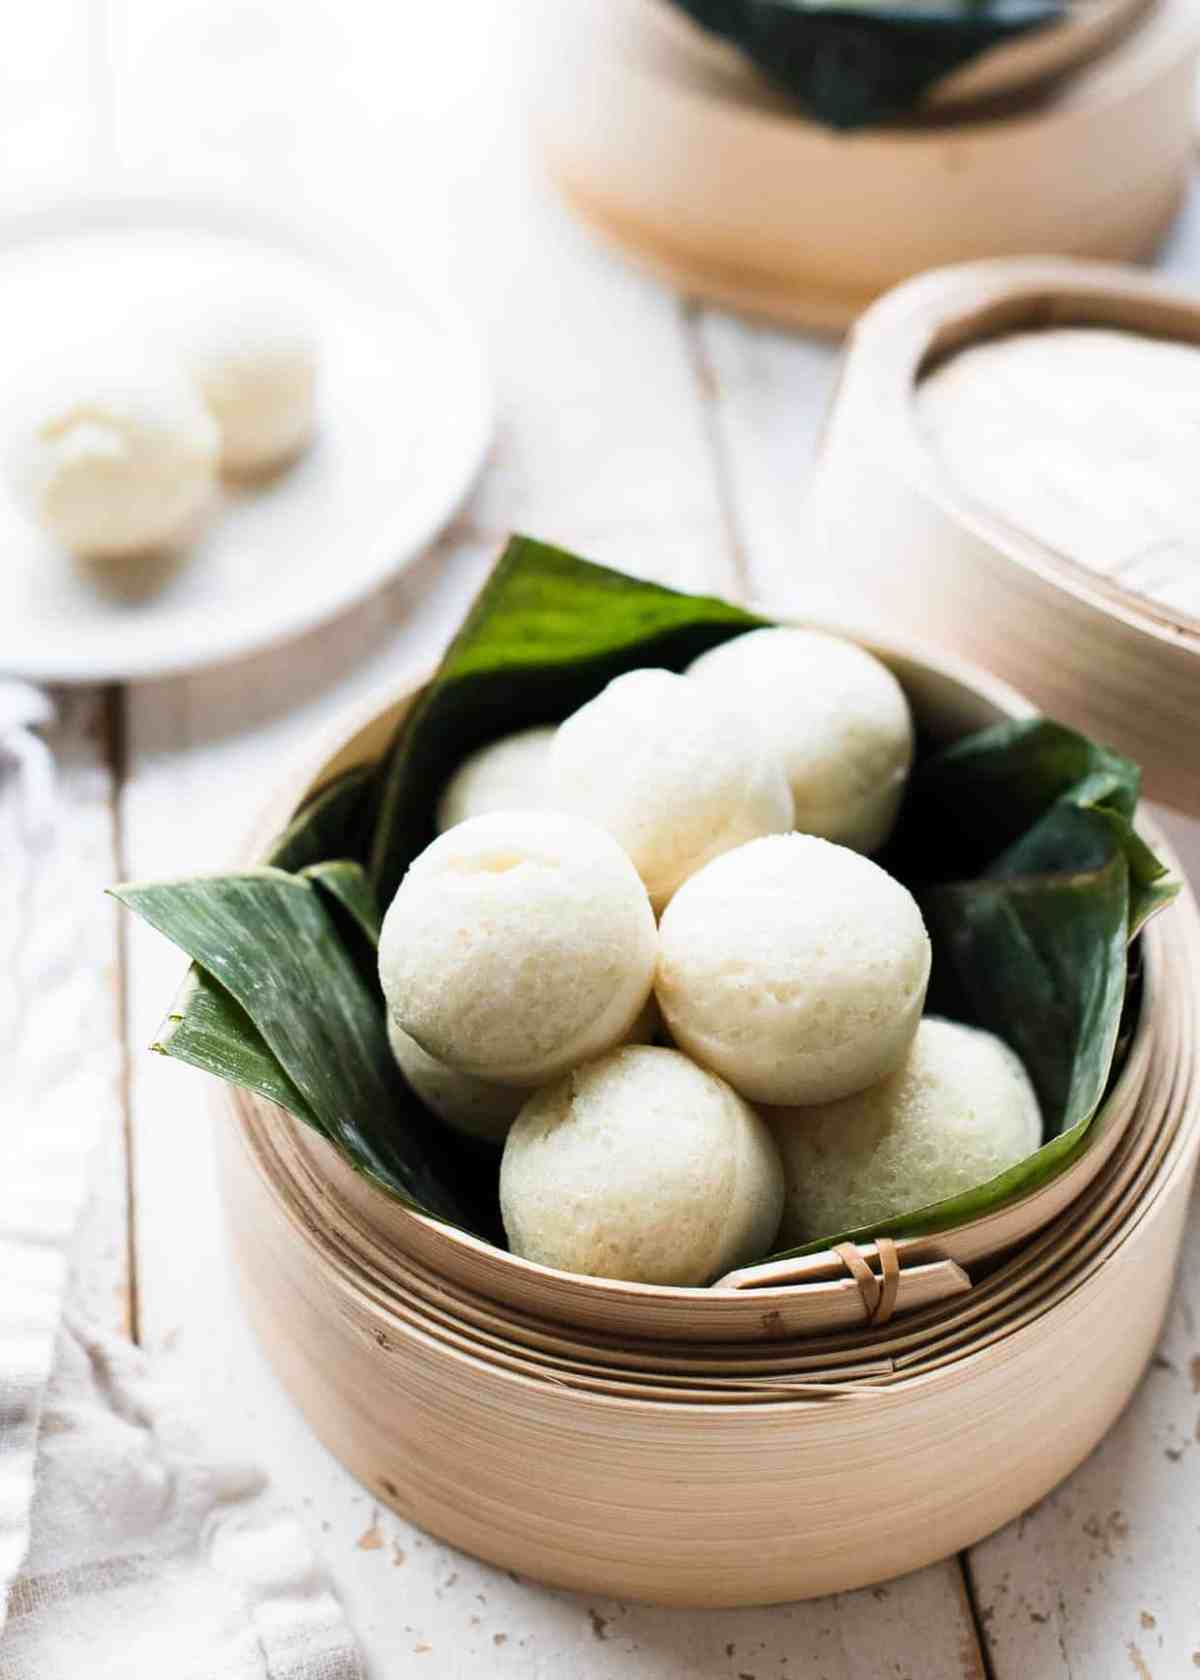 Bamboo steamer lined with banana leaves filled with steamed rice cakes, or puto.